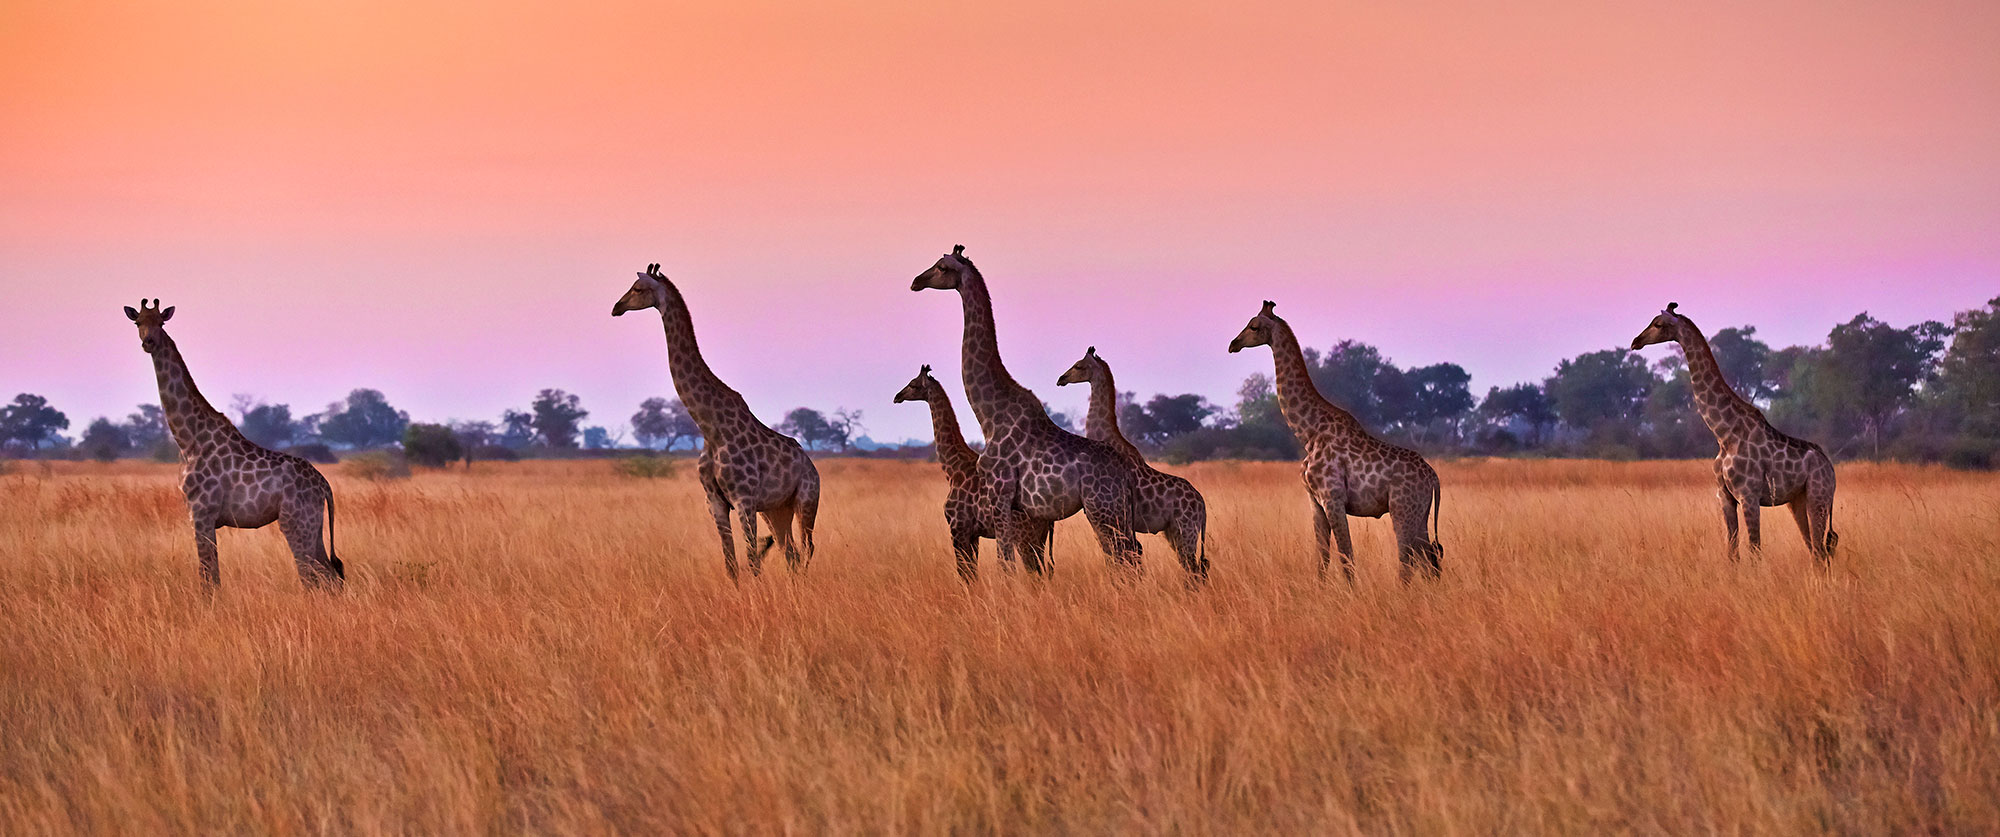 Botswana Safari Tour: Peak Season Okavango Adventure - Giraffes at Sunset